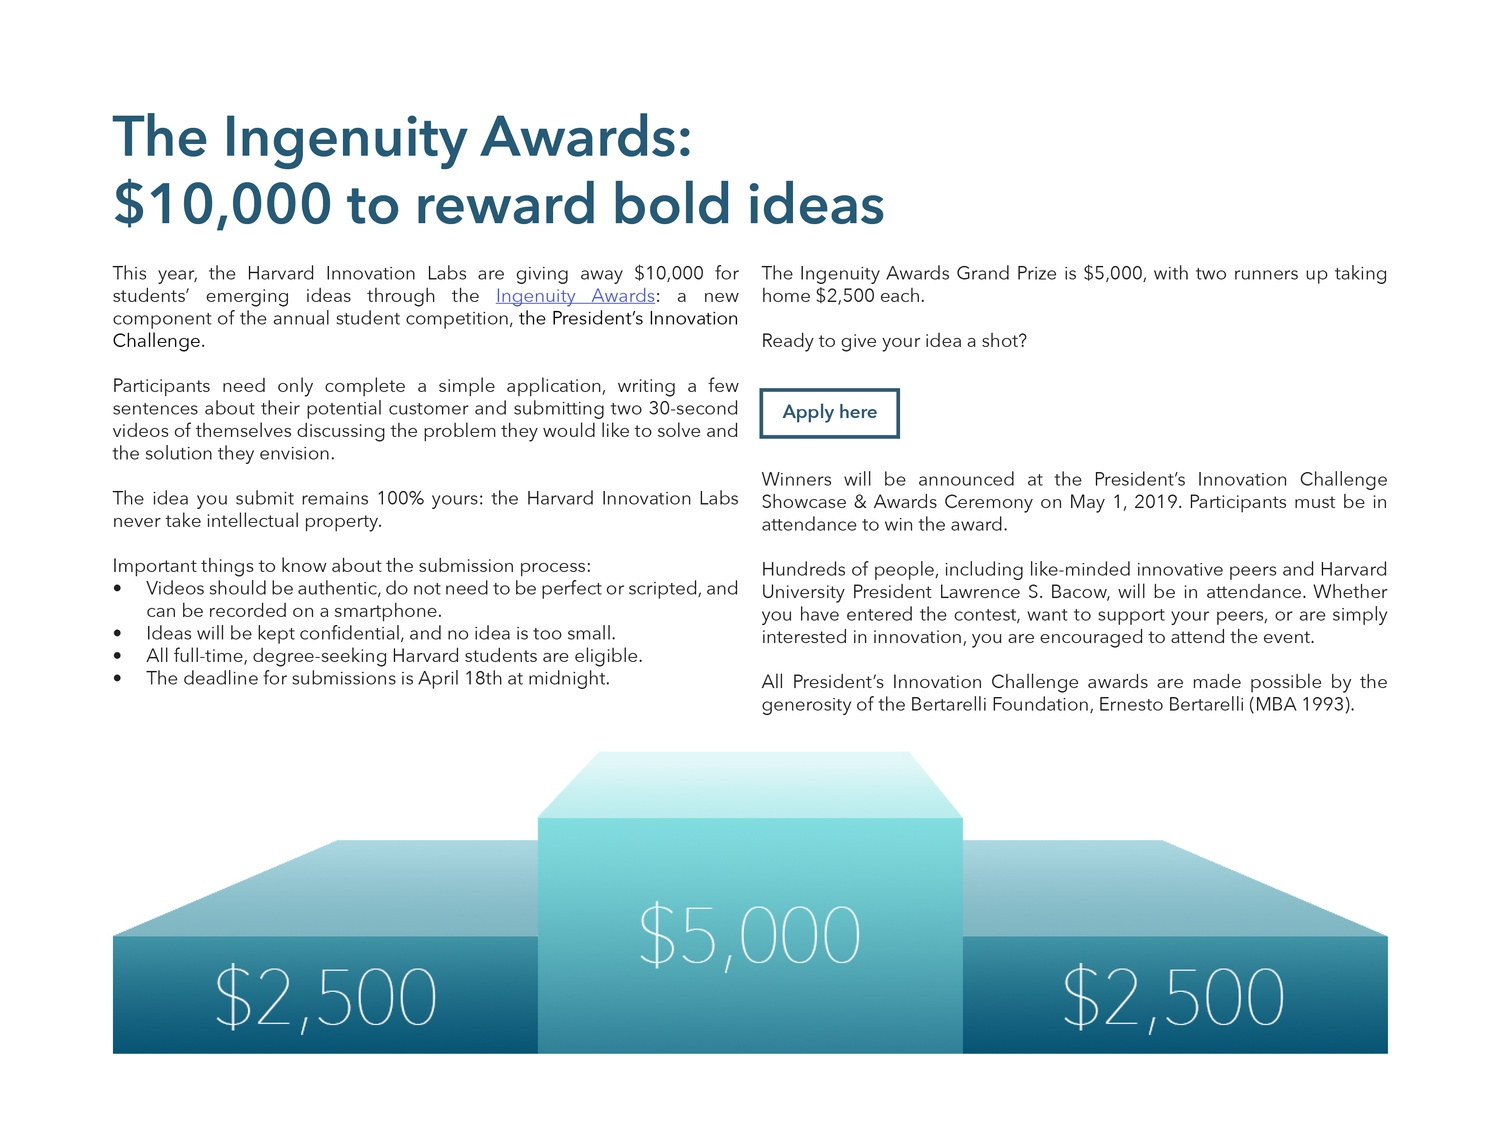 Apply to the Ingenuity Awards!